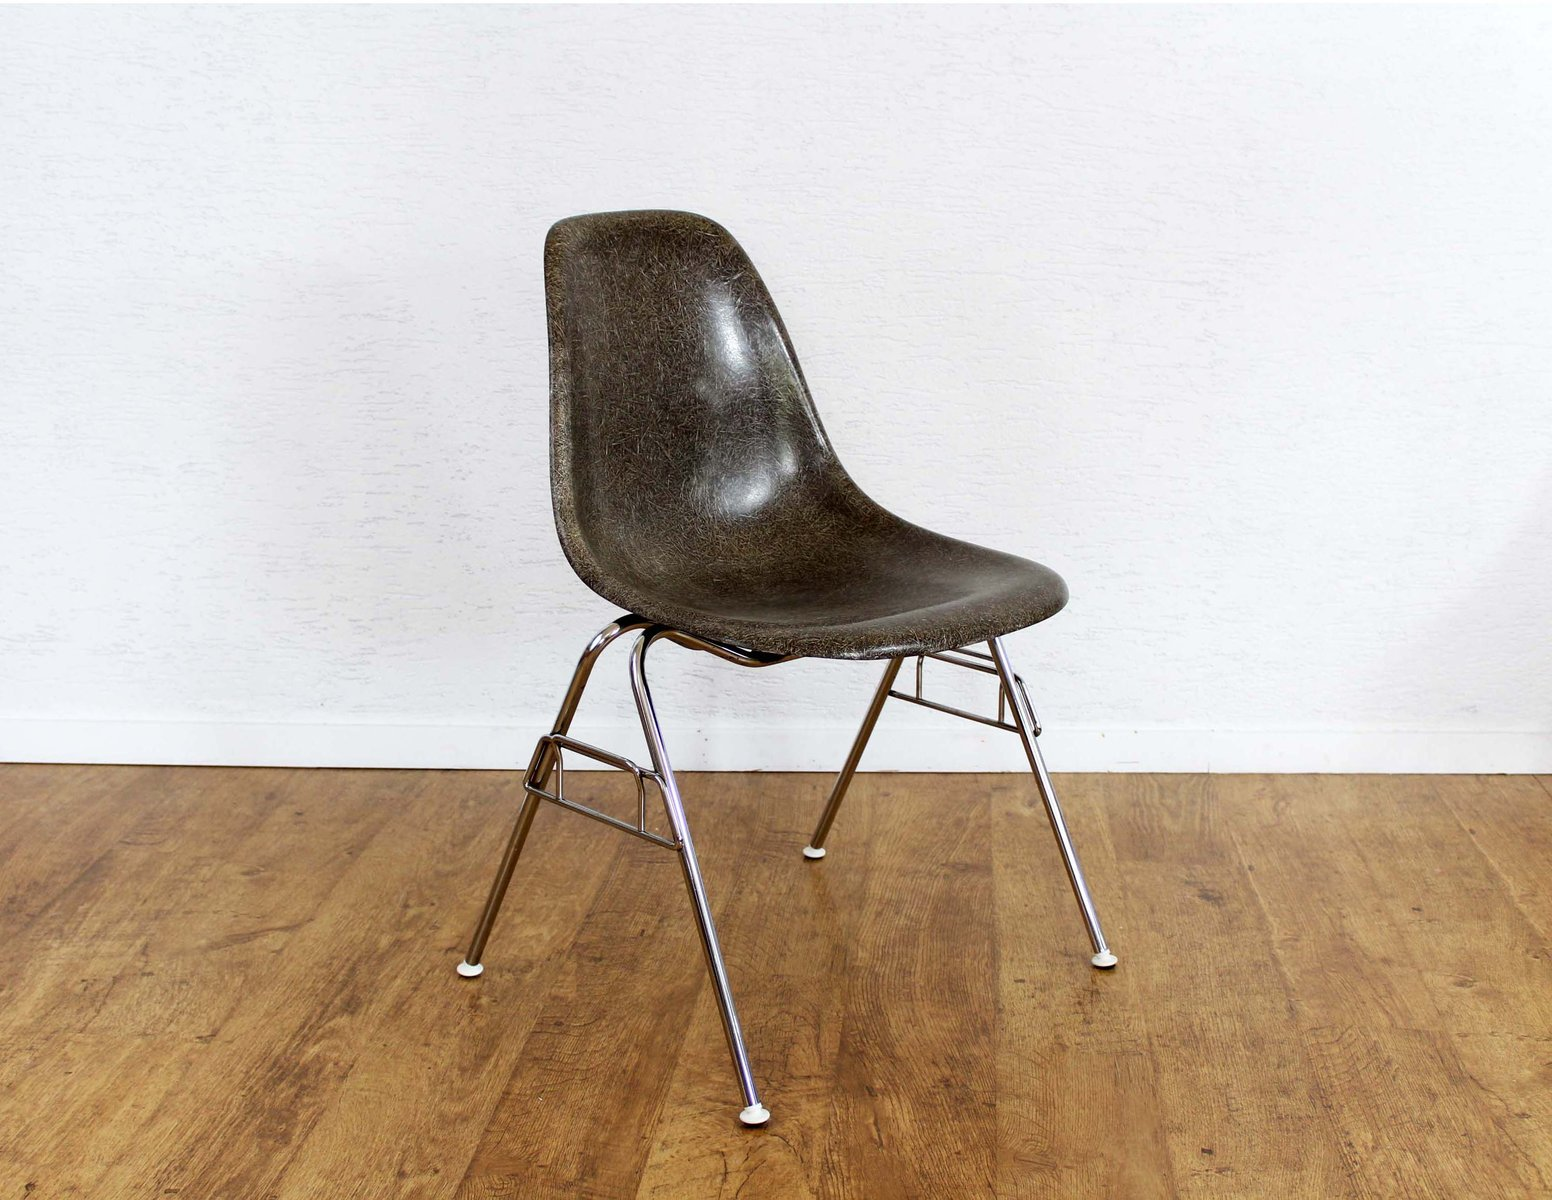 Mid century model dss chair by charles ray eames for for Eames chair nachbau deutschland